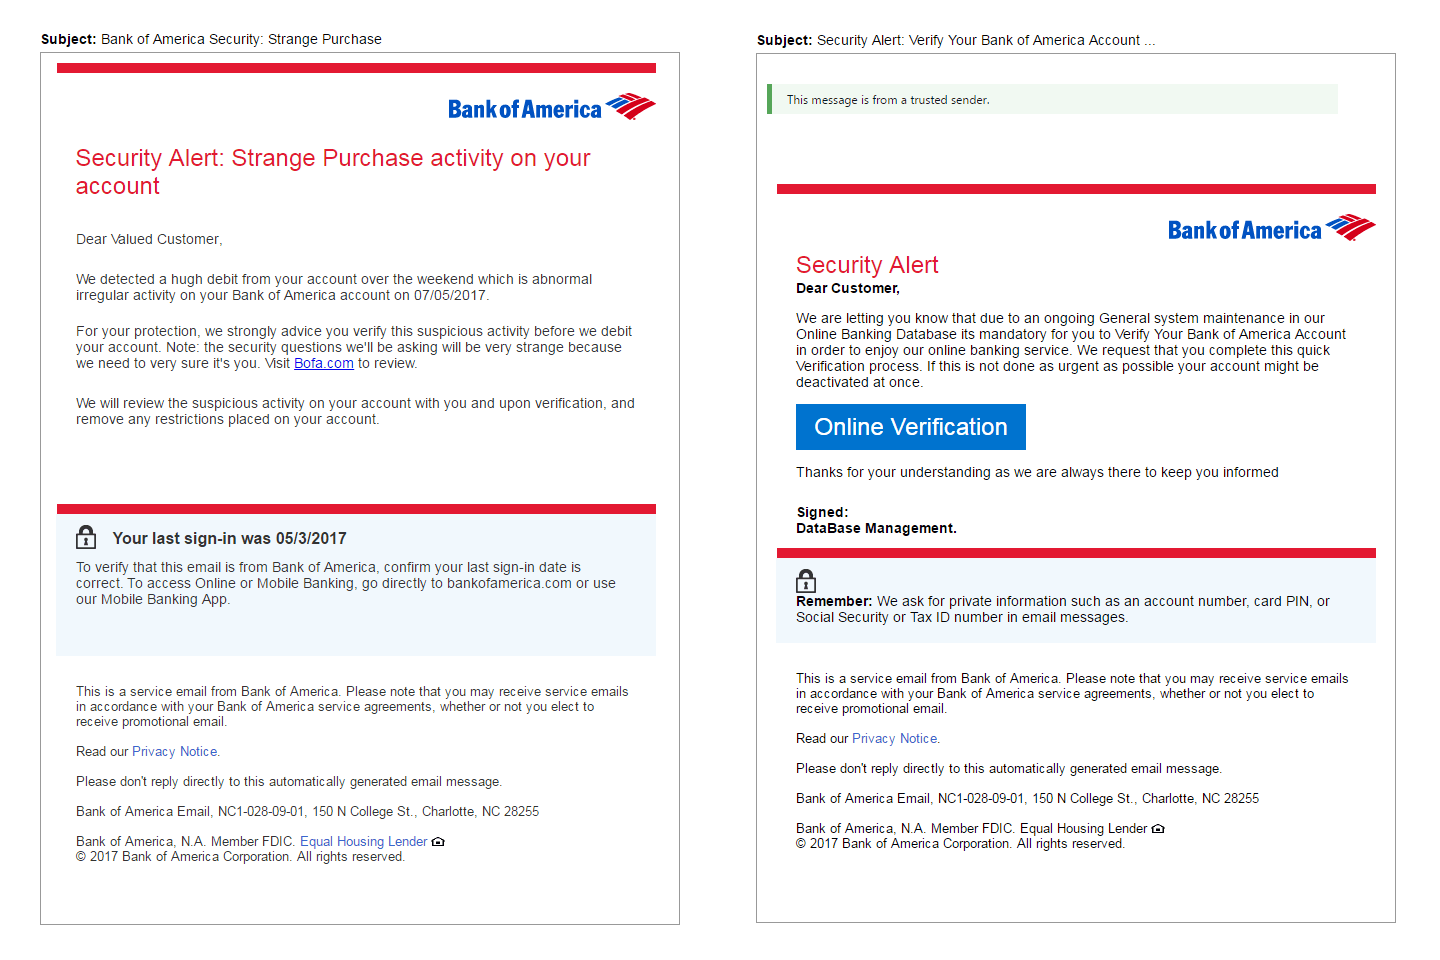 Bank of America Phishing Scam Emails